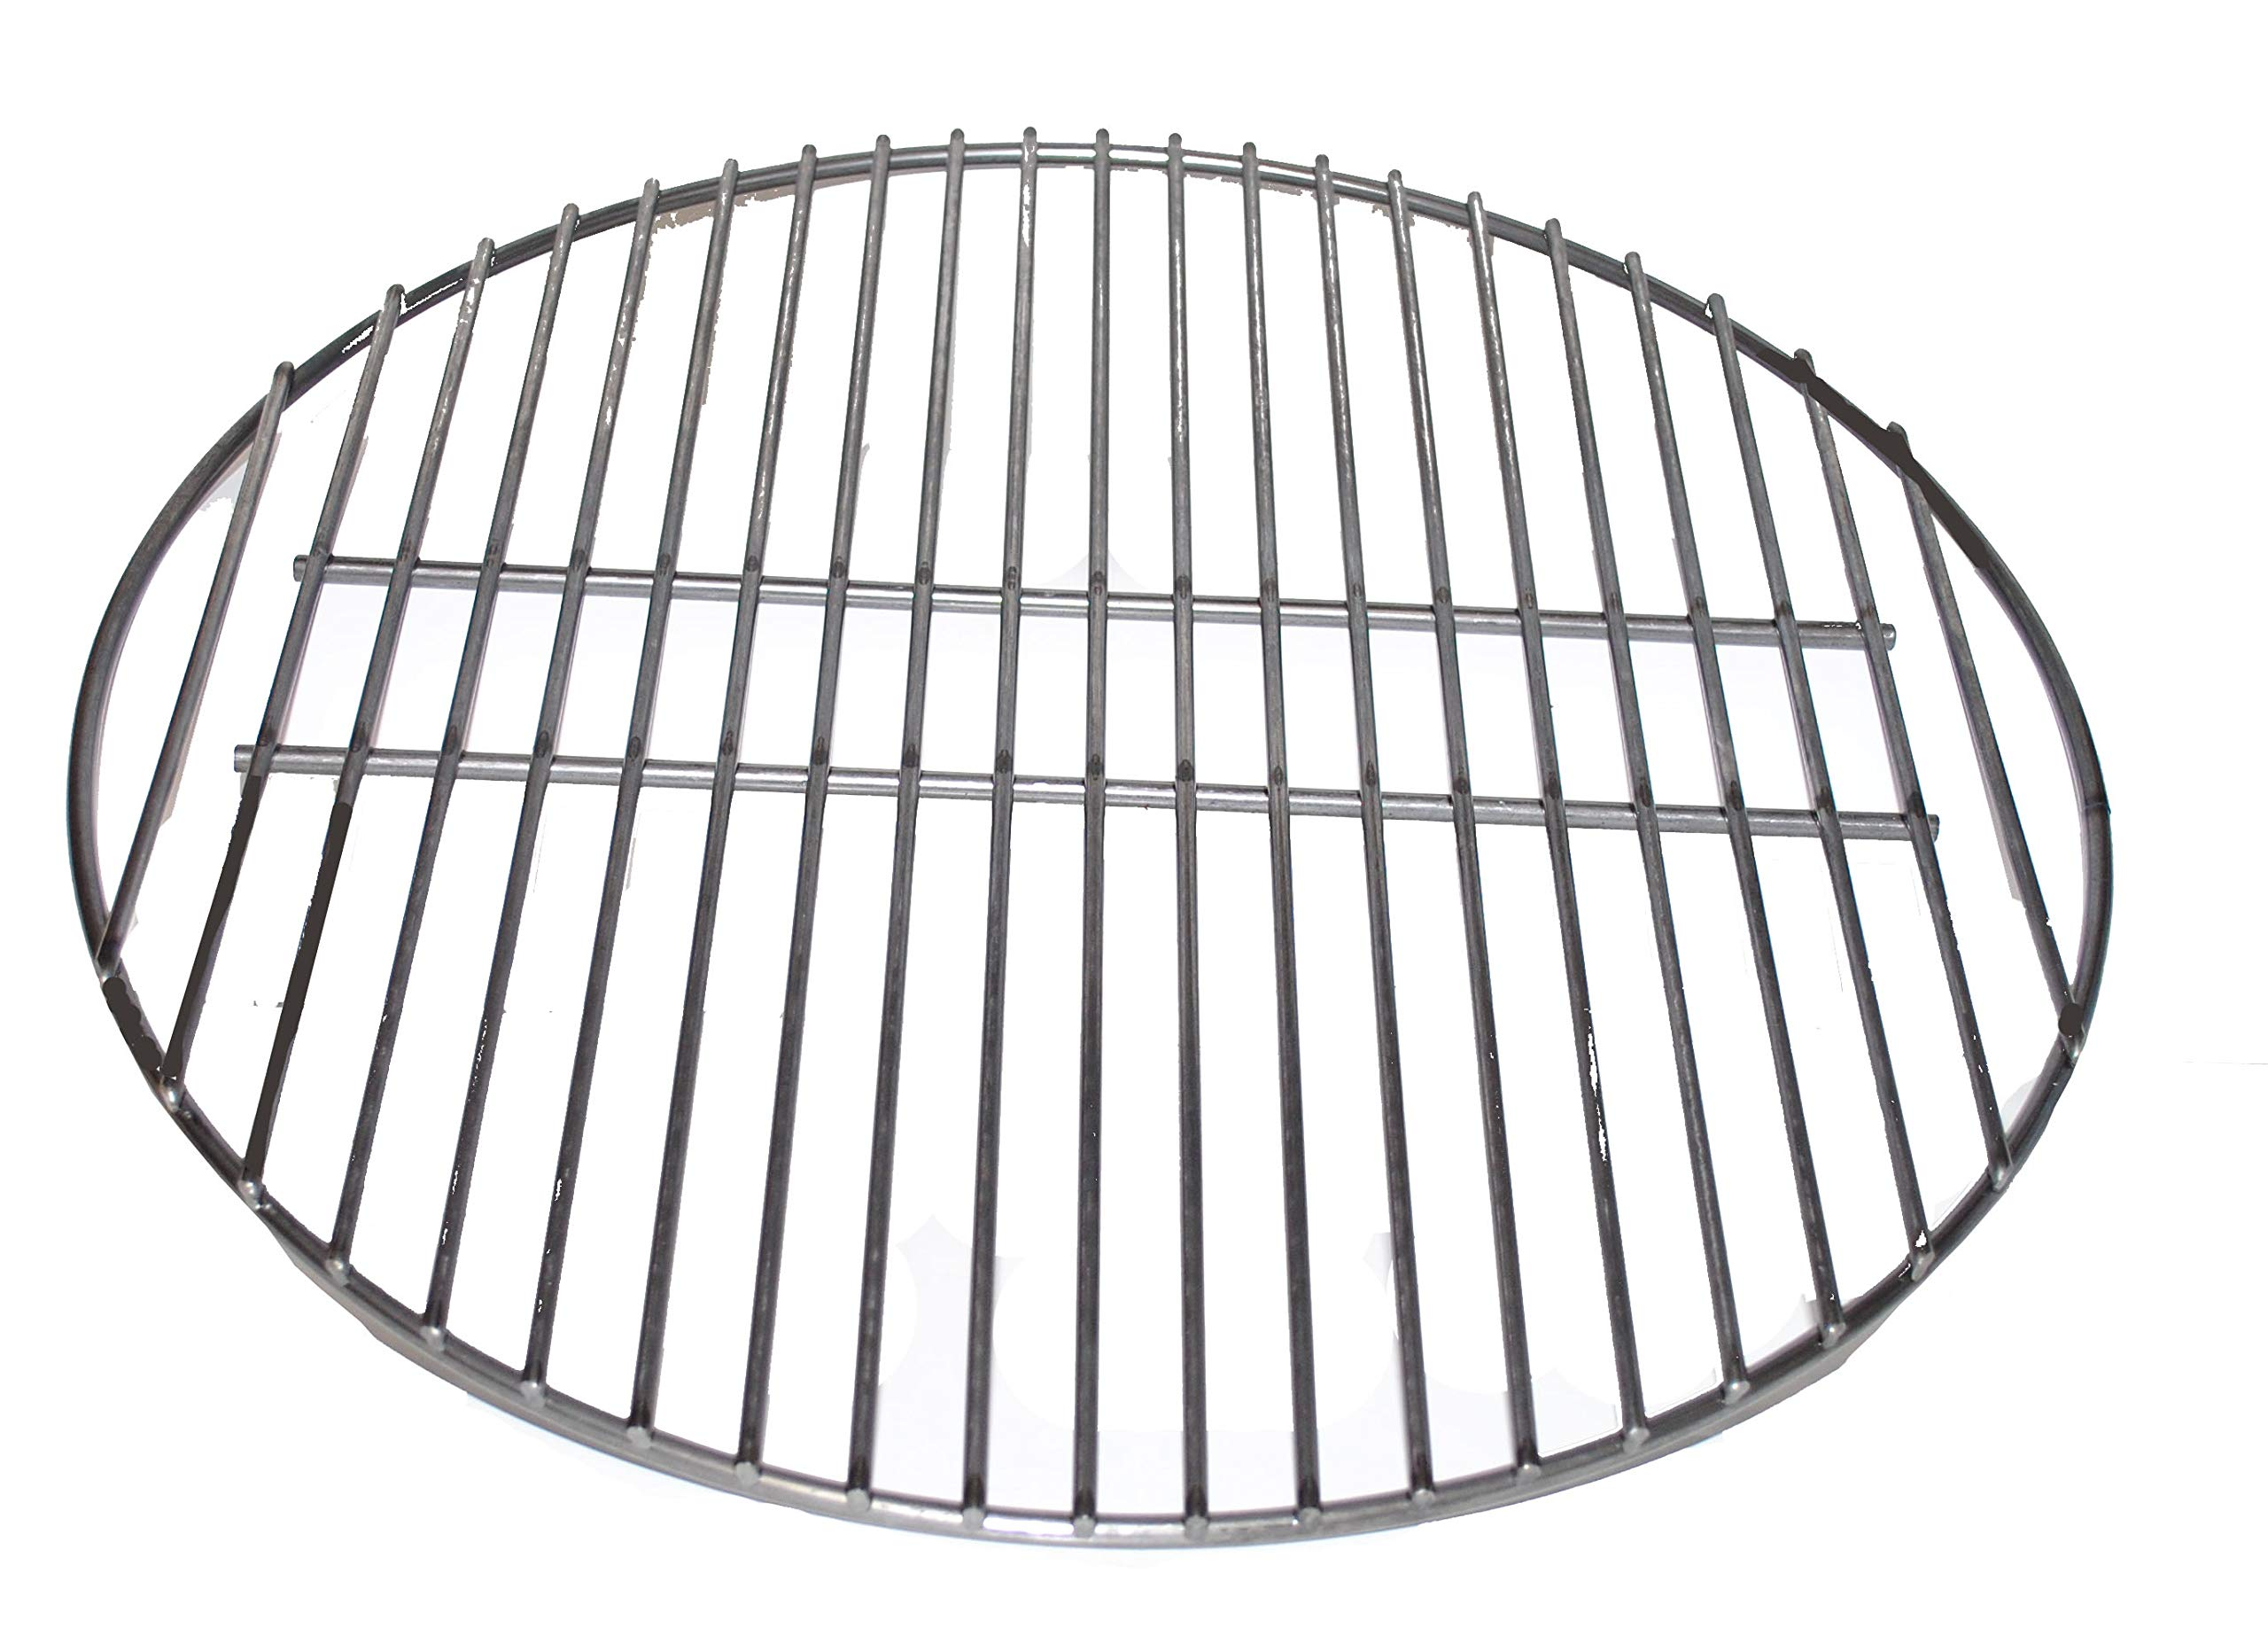 Weber 65947 17'' Charcoal Grate for 22'' Kettle Grill by Weber